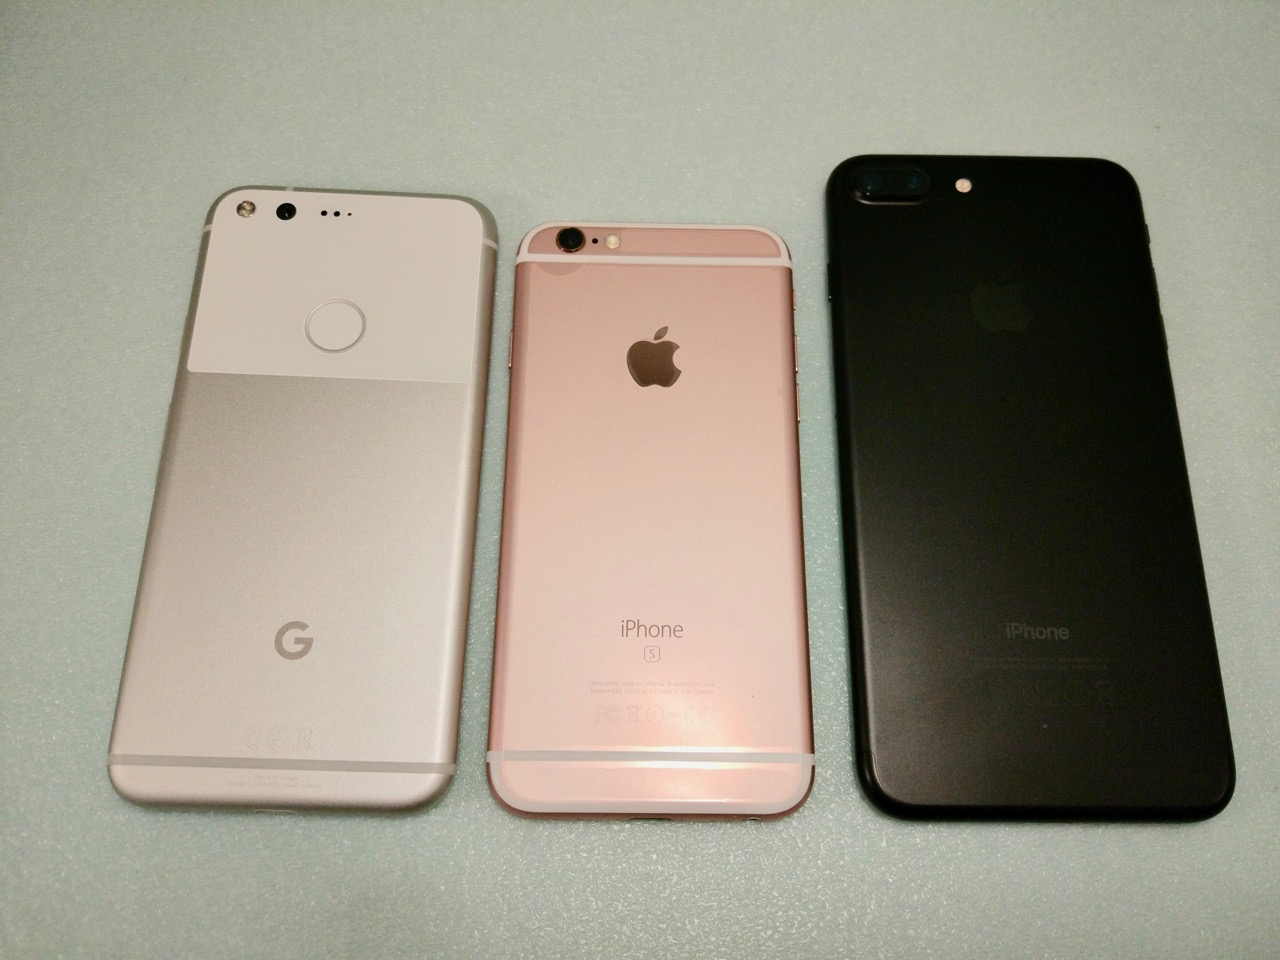 google-pixel-review-compare-pixel-vs-iphone-7-vs-iphone-7-plus-back-view